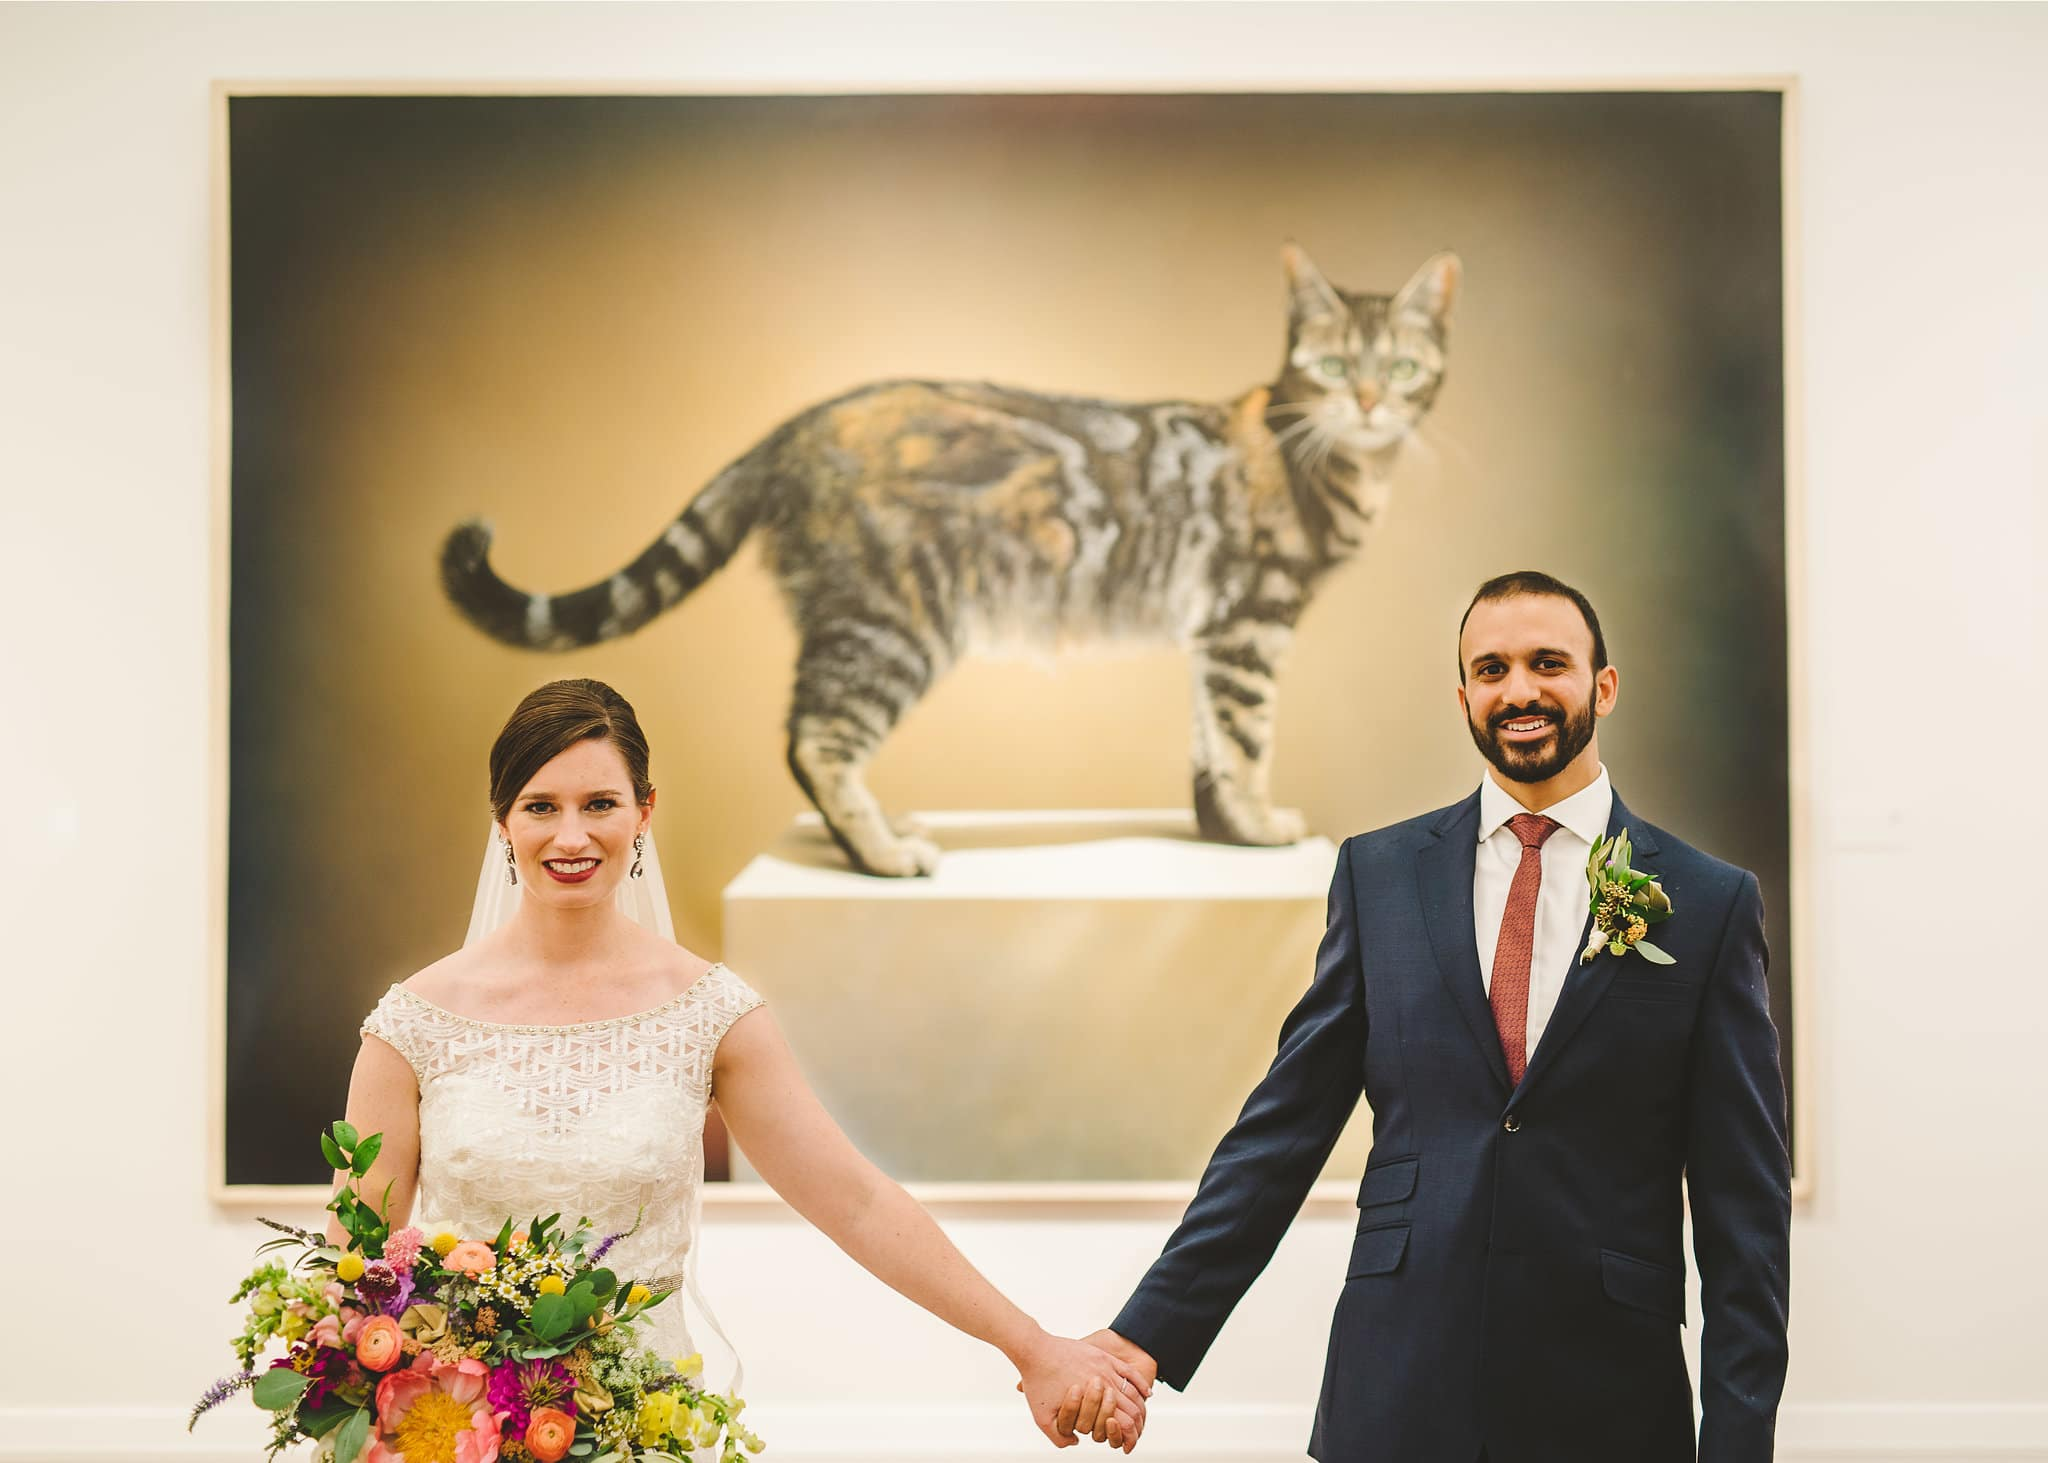 Wedding photos with the cat portrait at Foundation for the Carolinas in uptown Charlotte, NC